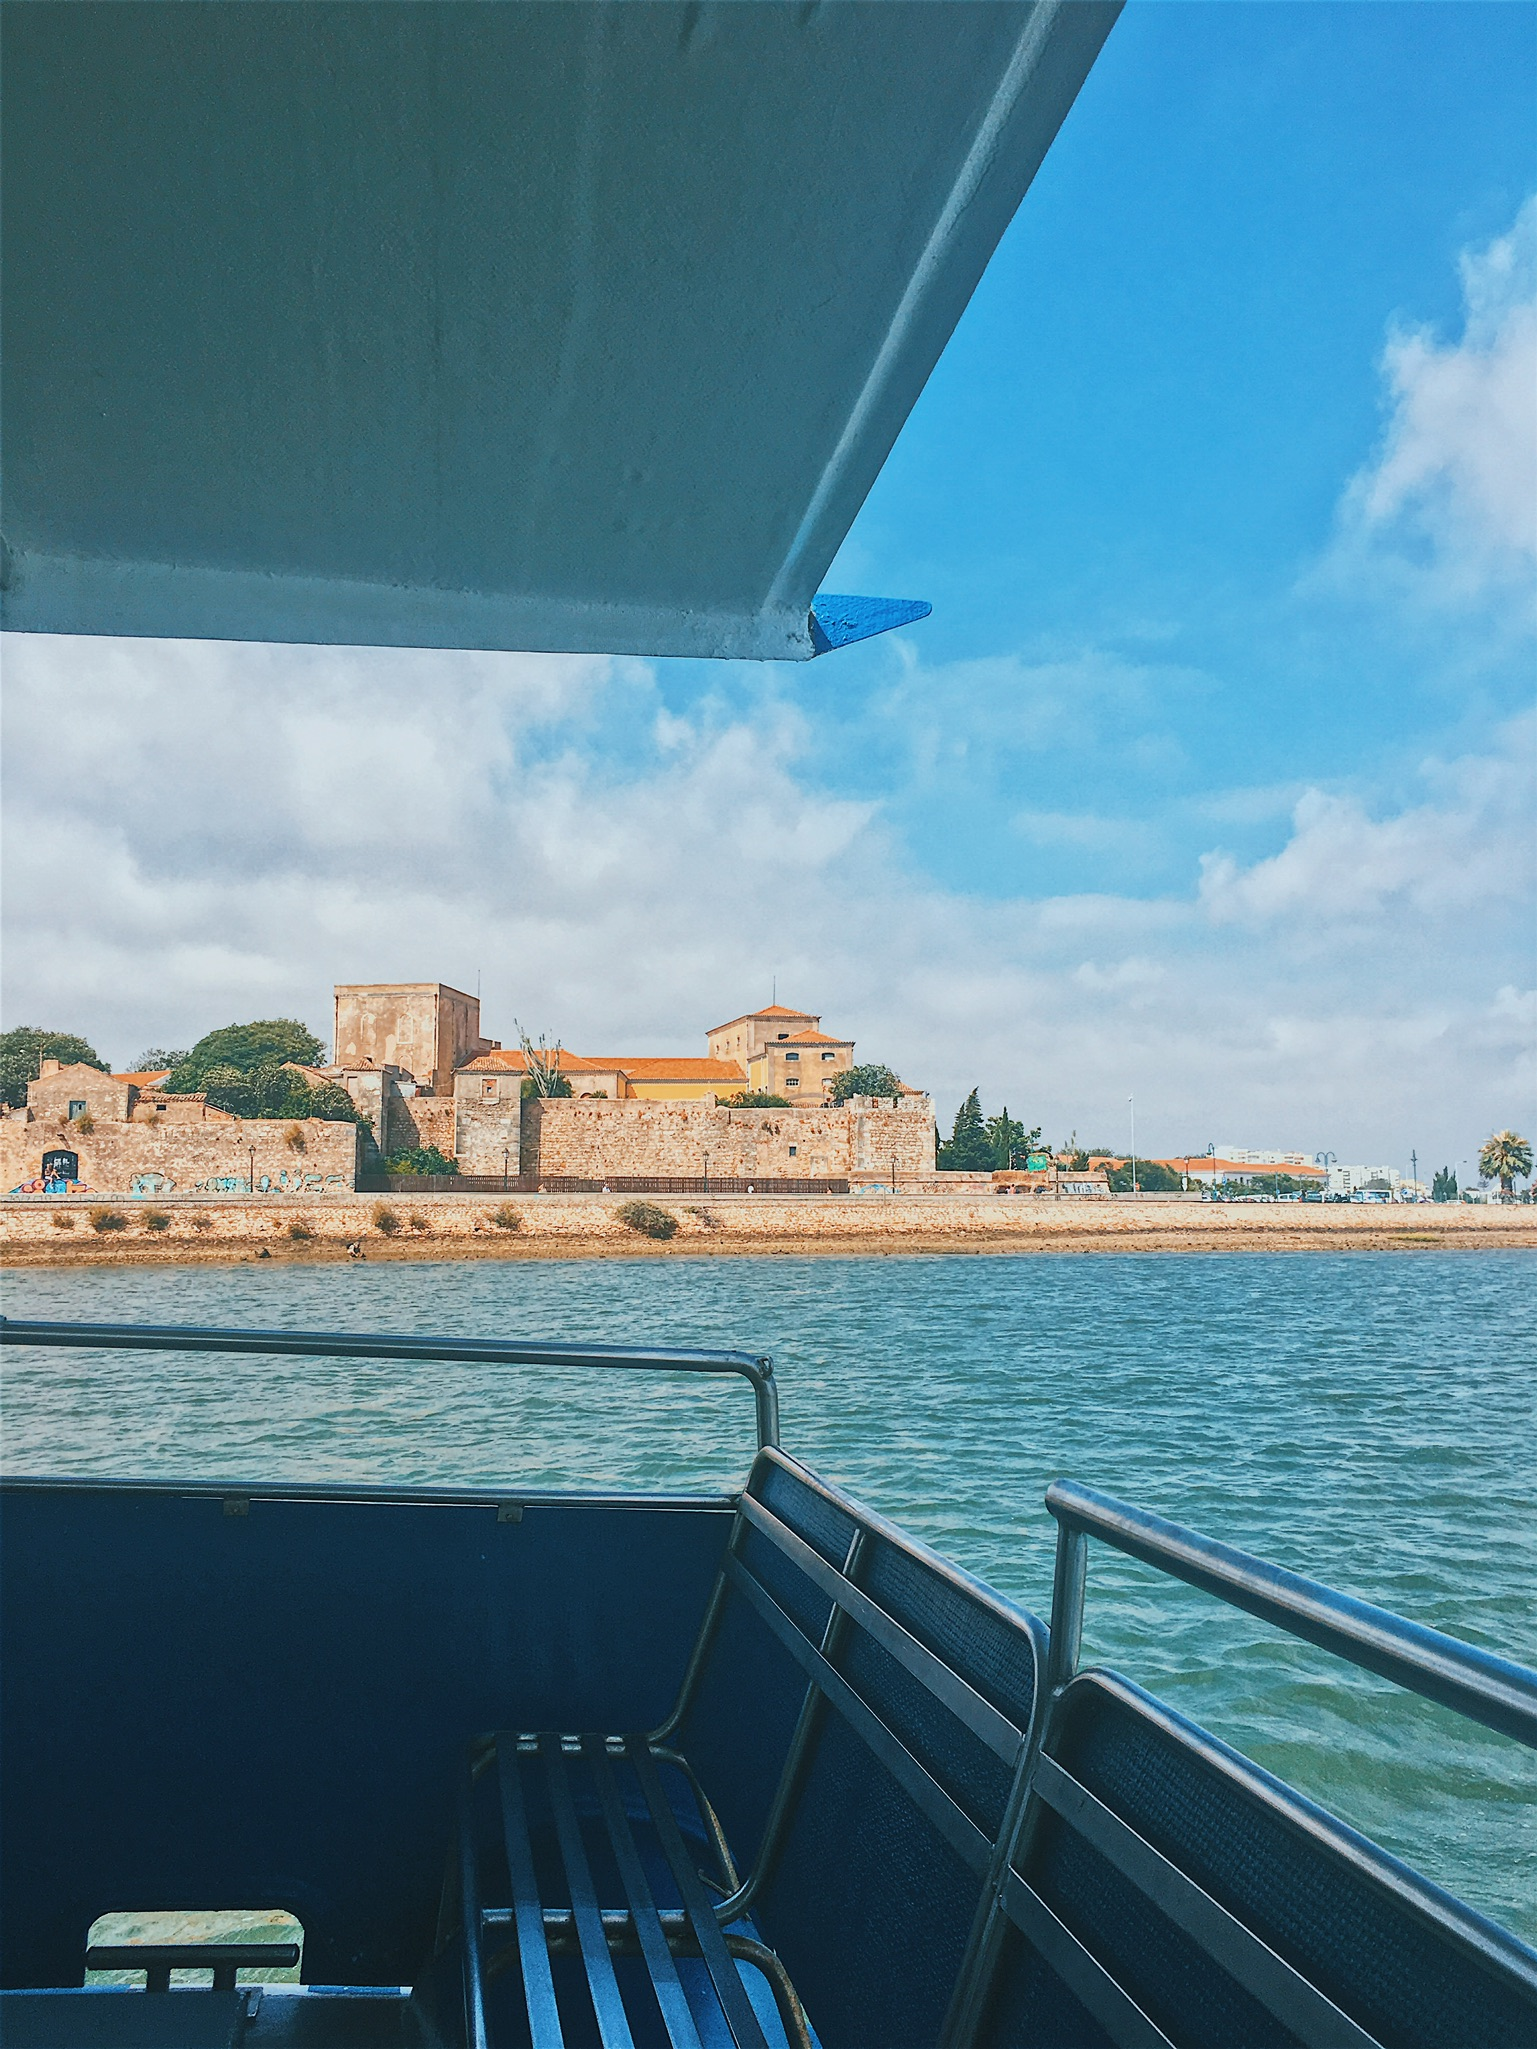 The view of Faro from the ferry, returning back to town